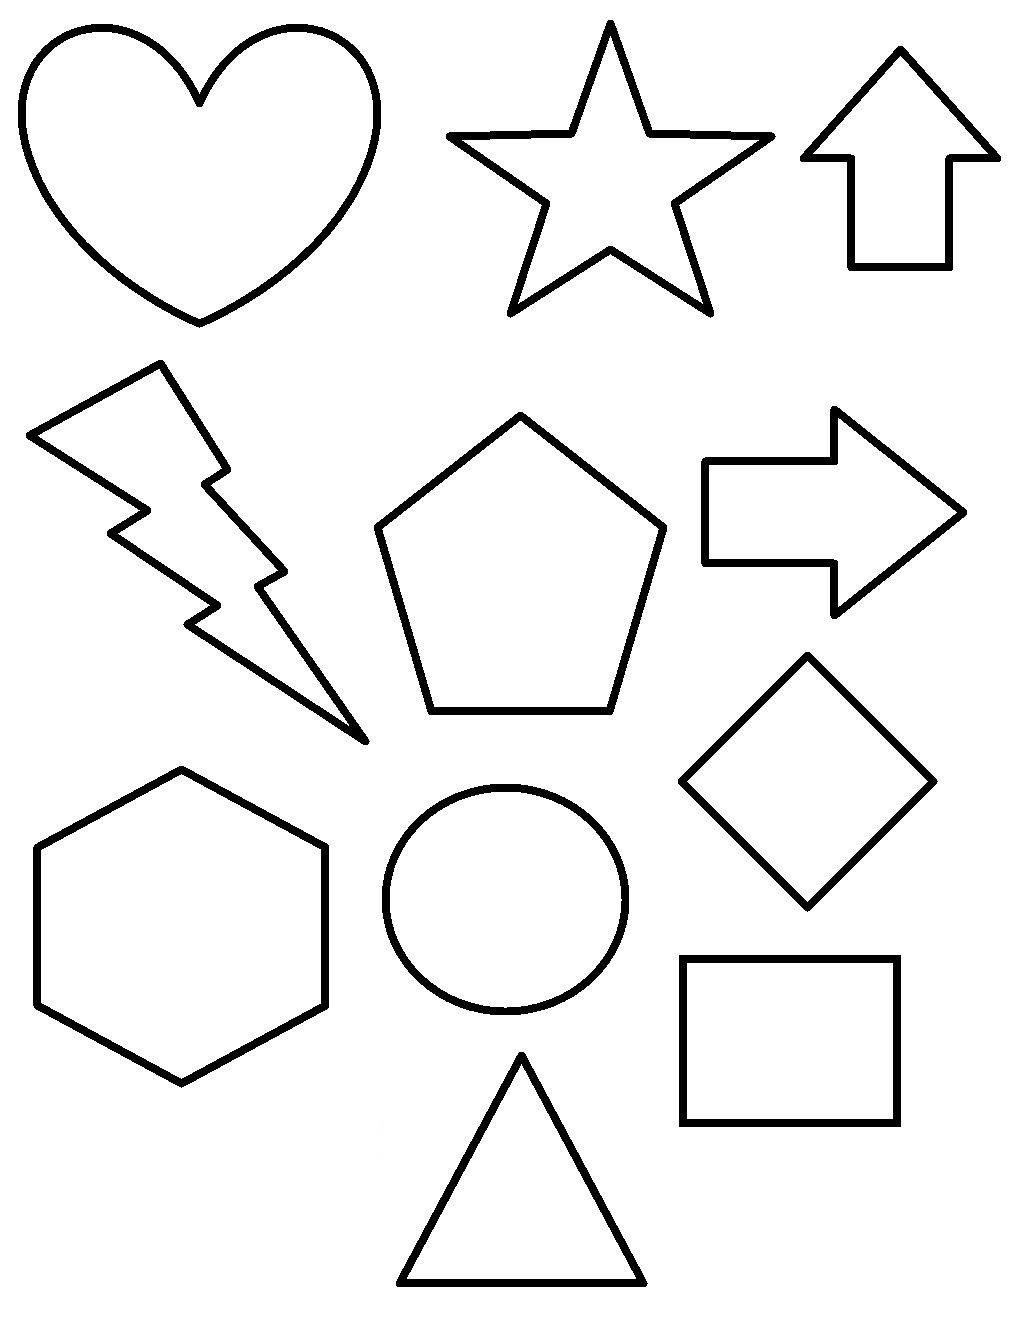 21 top photos ideas for shapes coloring pages gft 10746